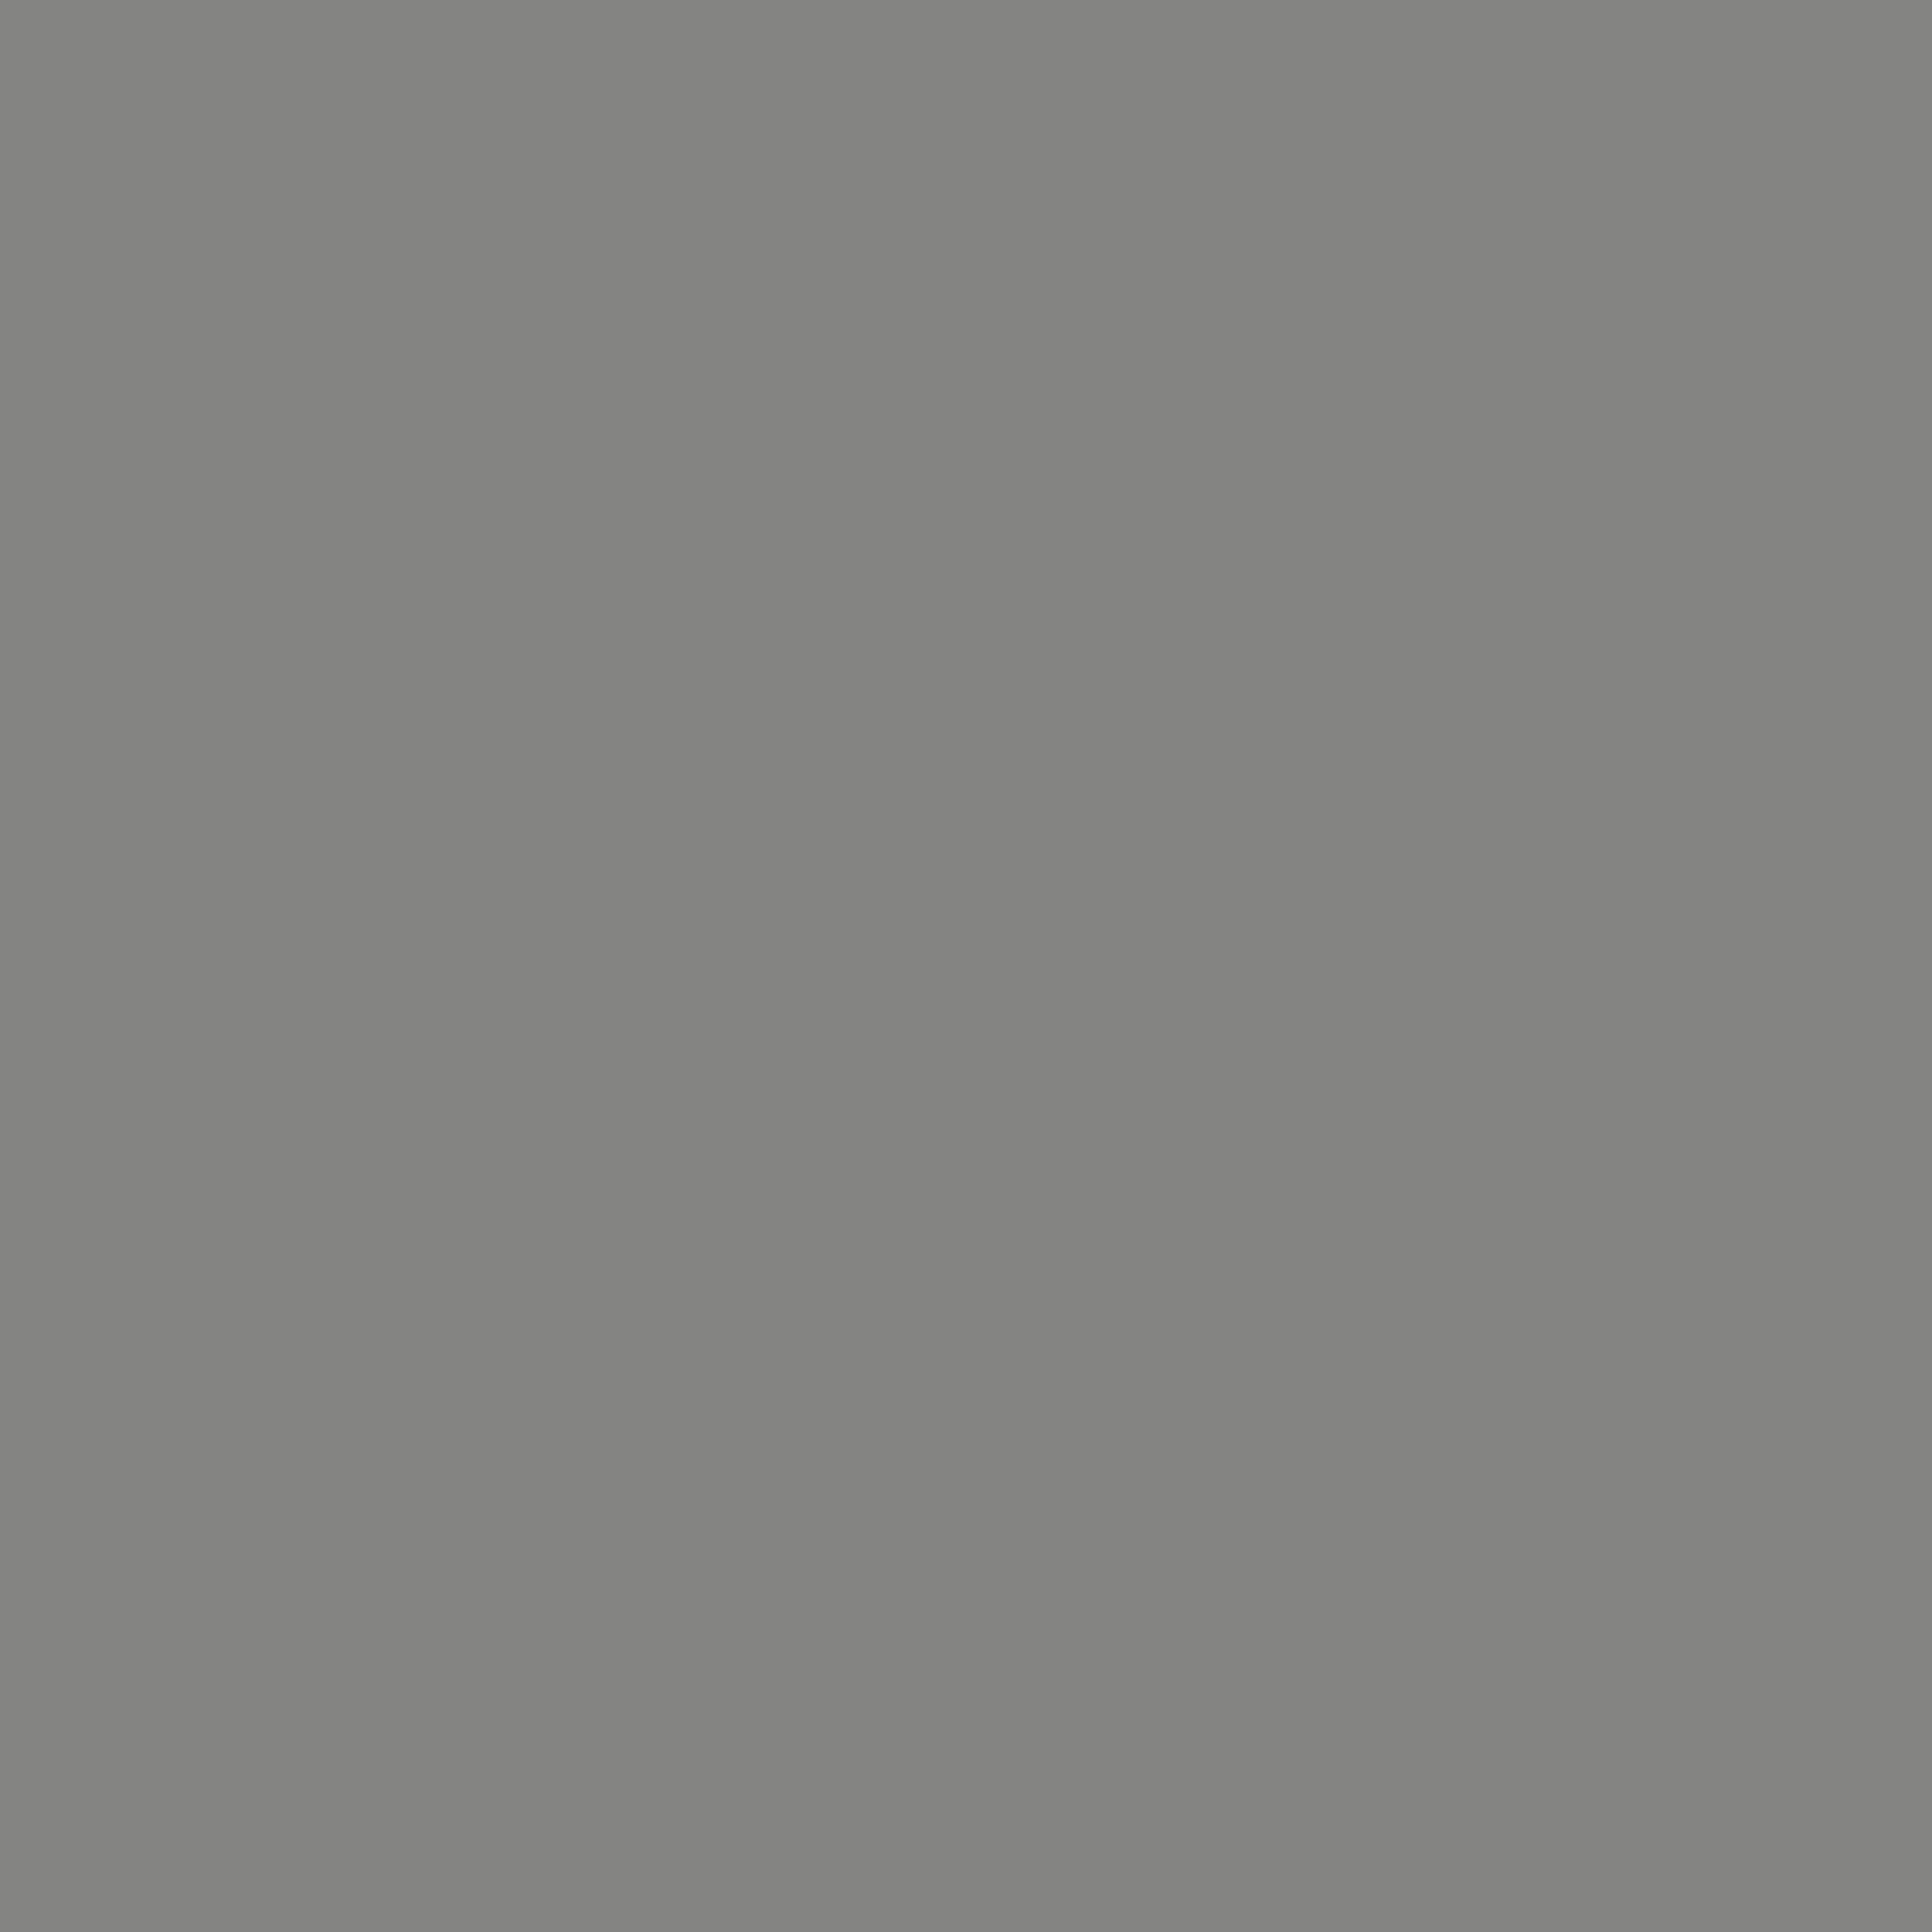 2732x2732 Old Silver Solid Color Background